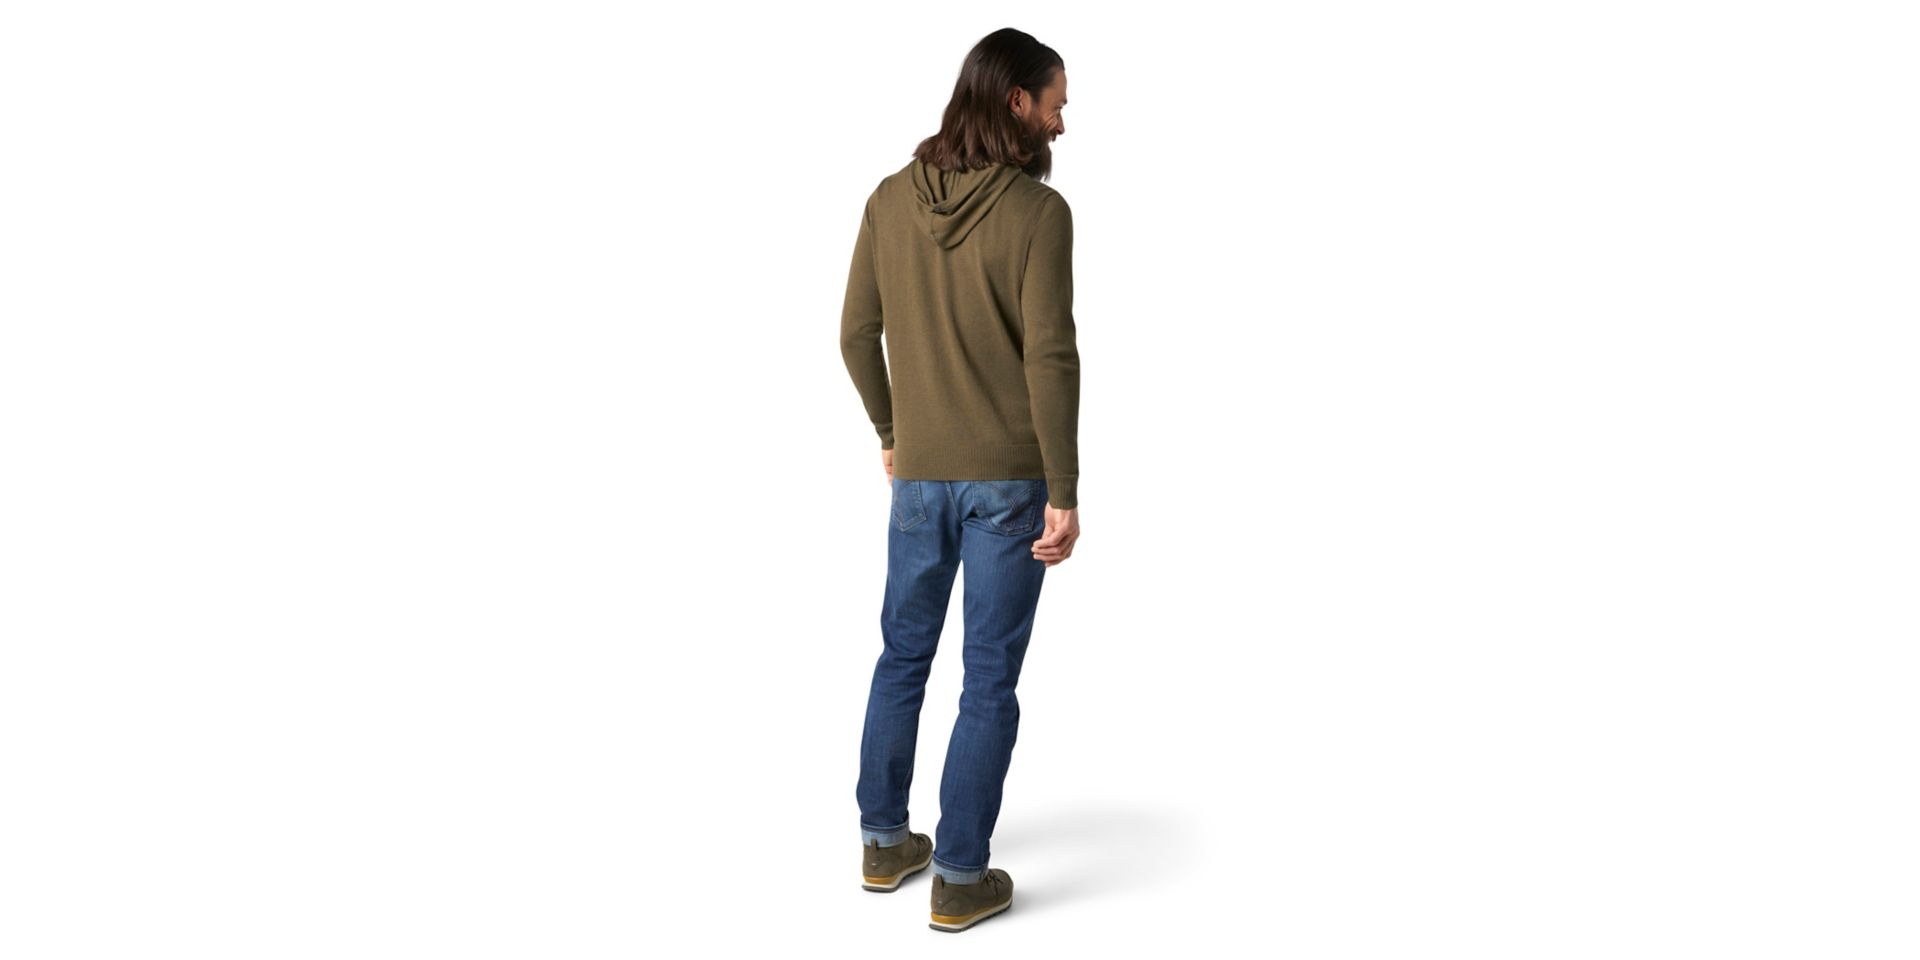 Sparwood Hoodie Sweater, Military Olive